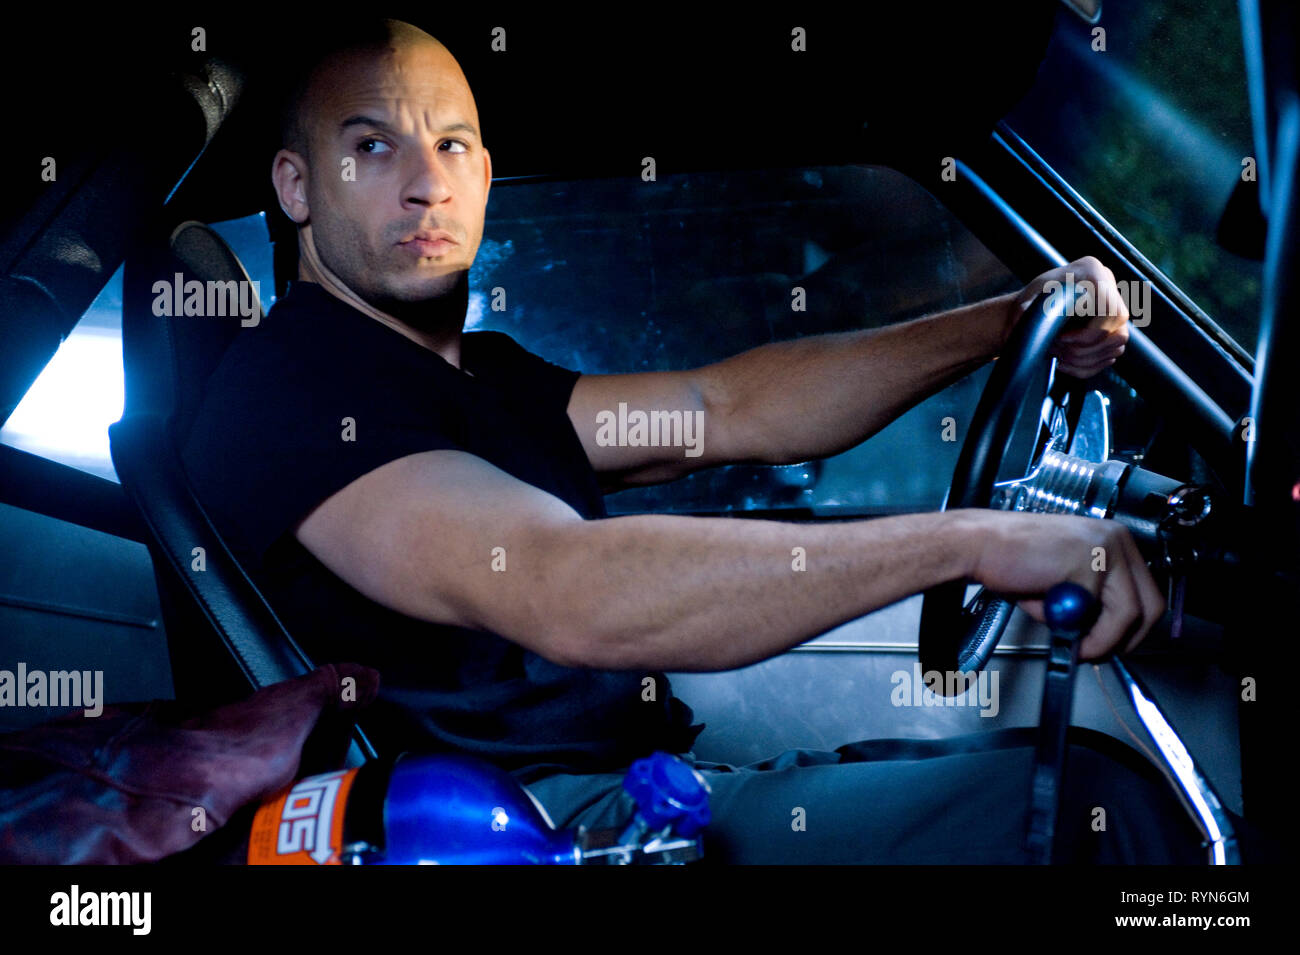 VIN DIESEL, FAST and FURIOUS, 2009 - Stock Image